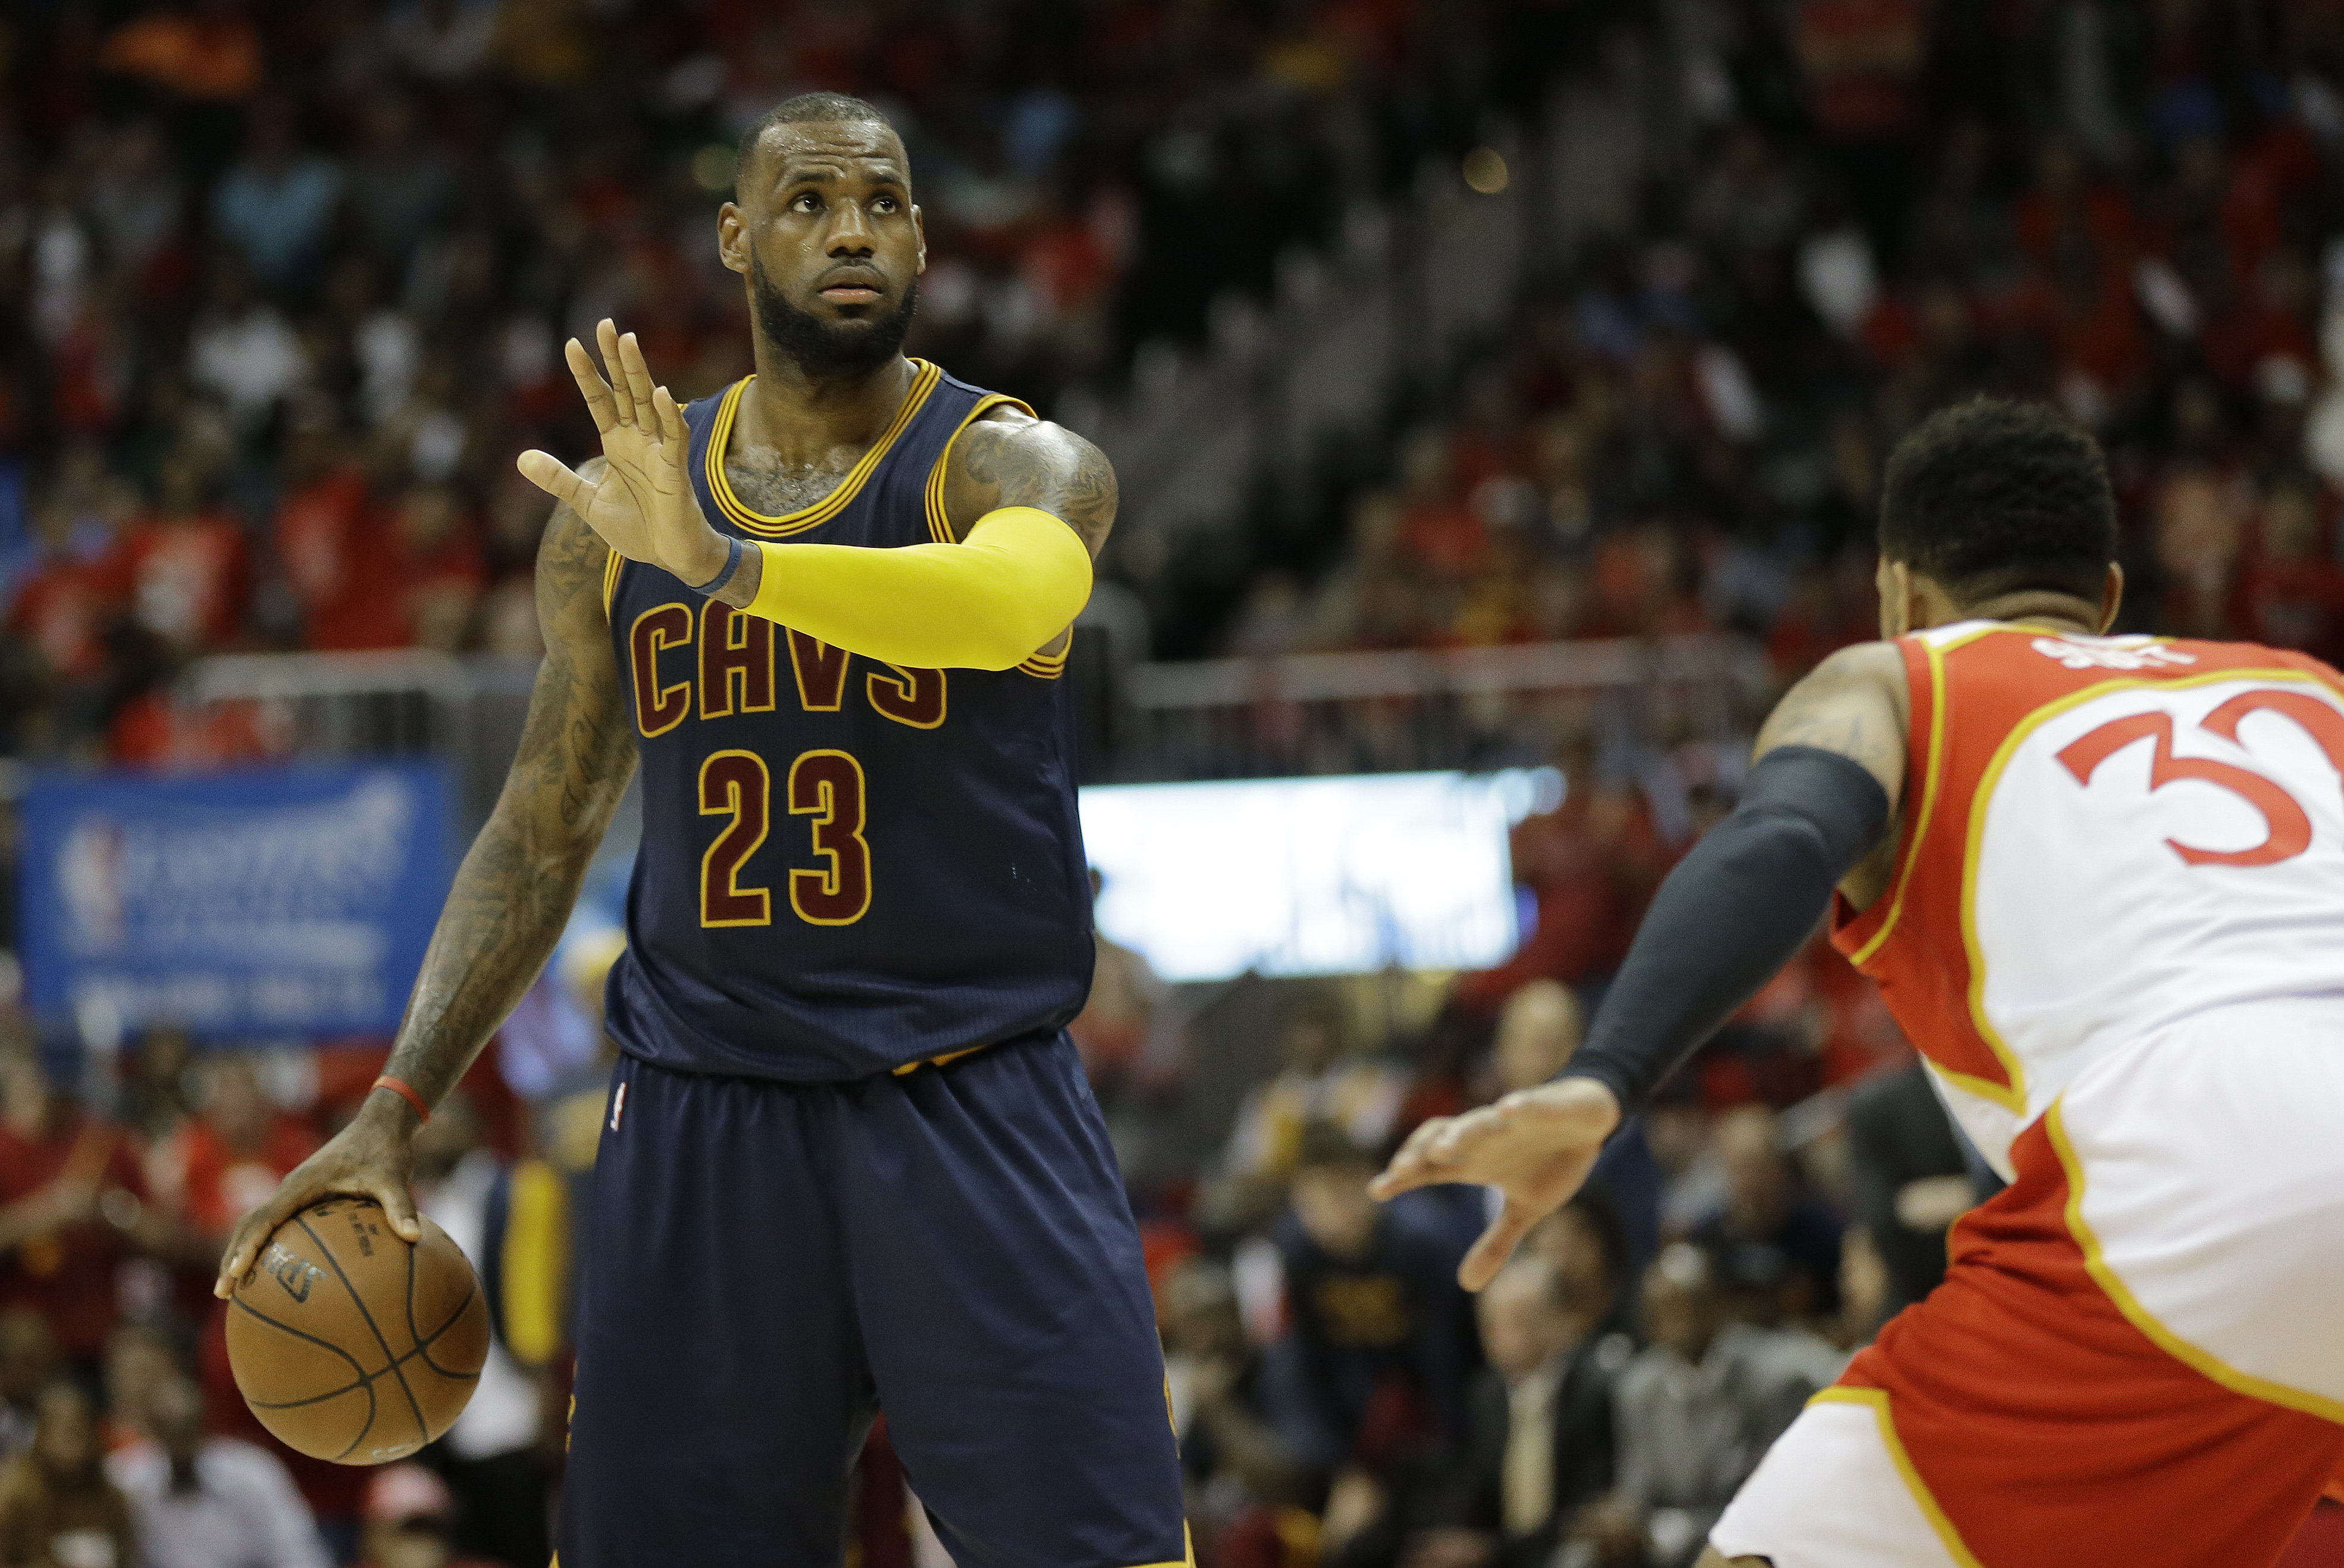 LeBron dazzles as Cavs take commanding 2-0 lead